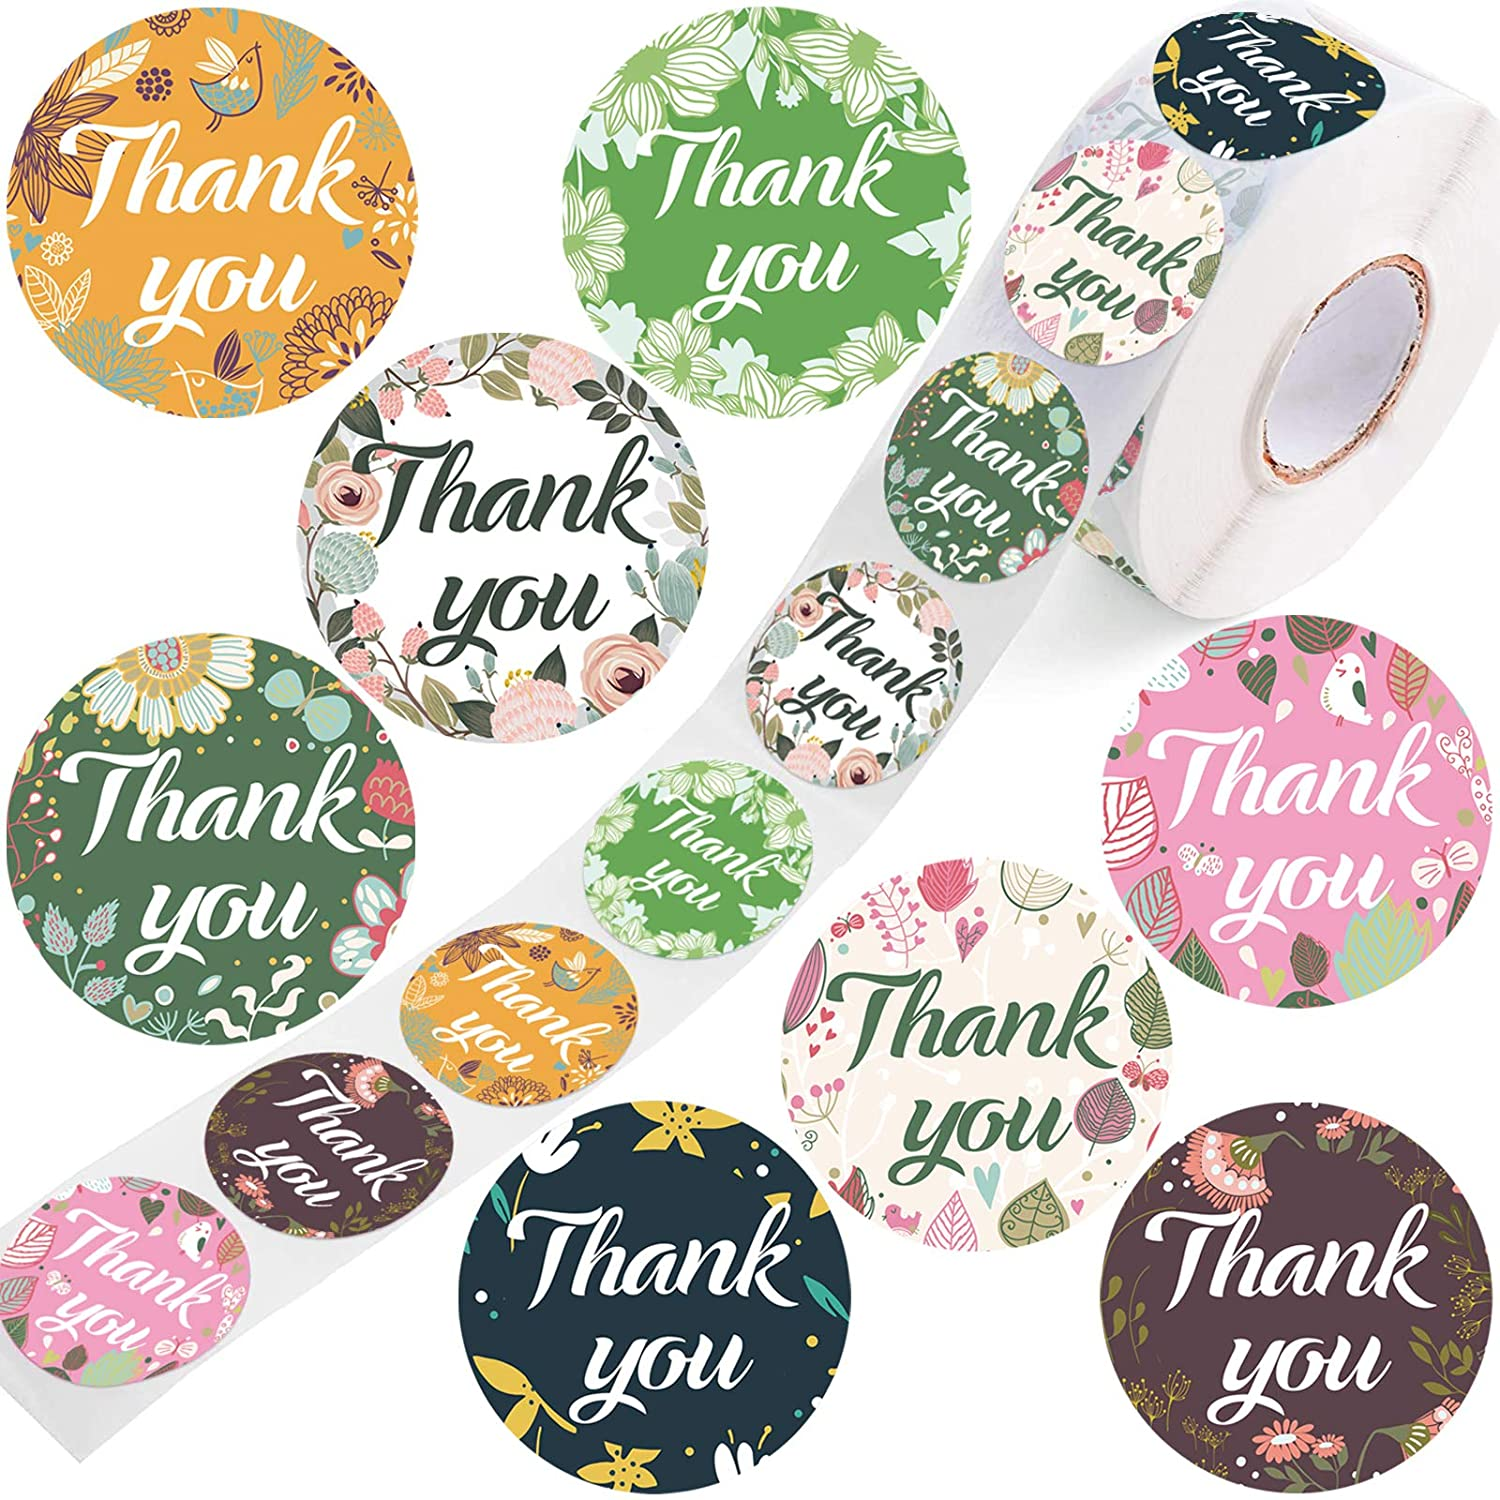 Thank You Stickers-Roll Floral 1000pcs — 8 Designs 1.5